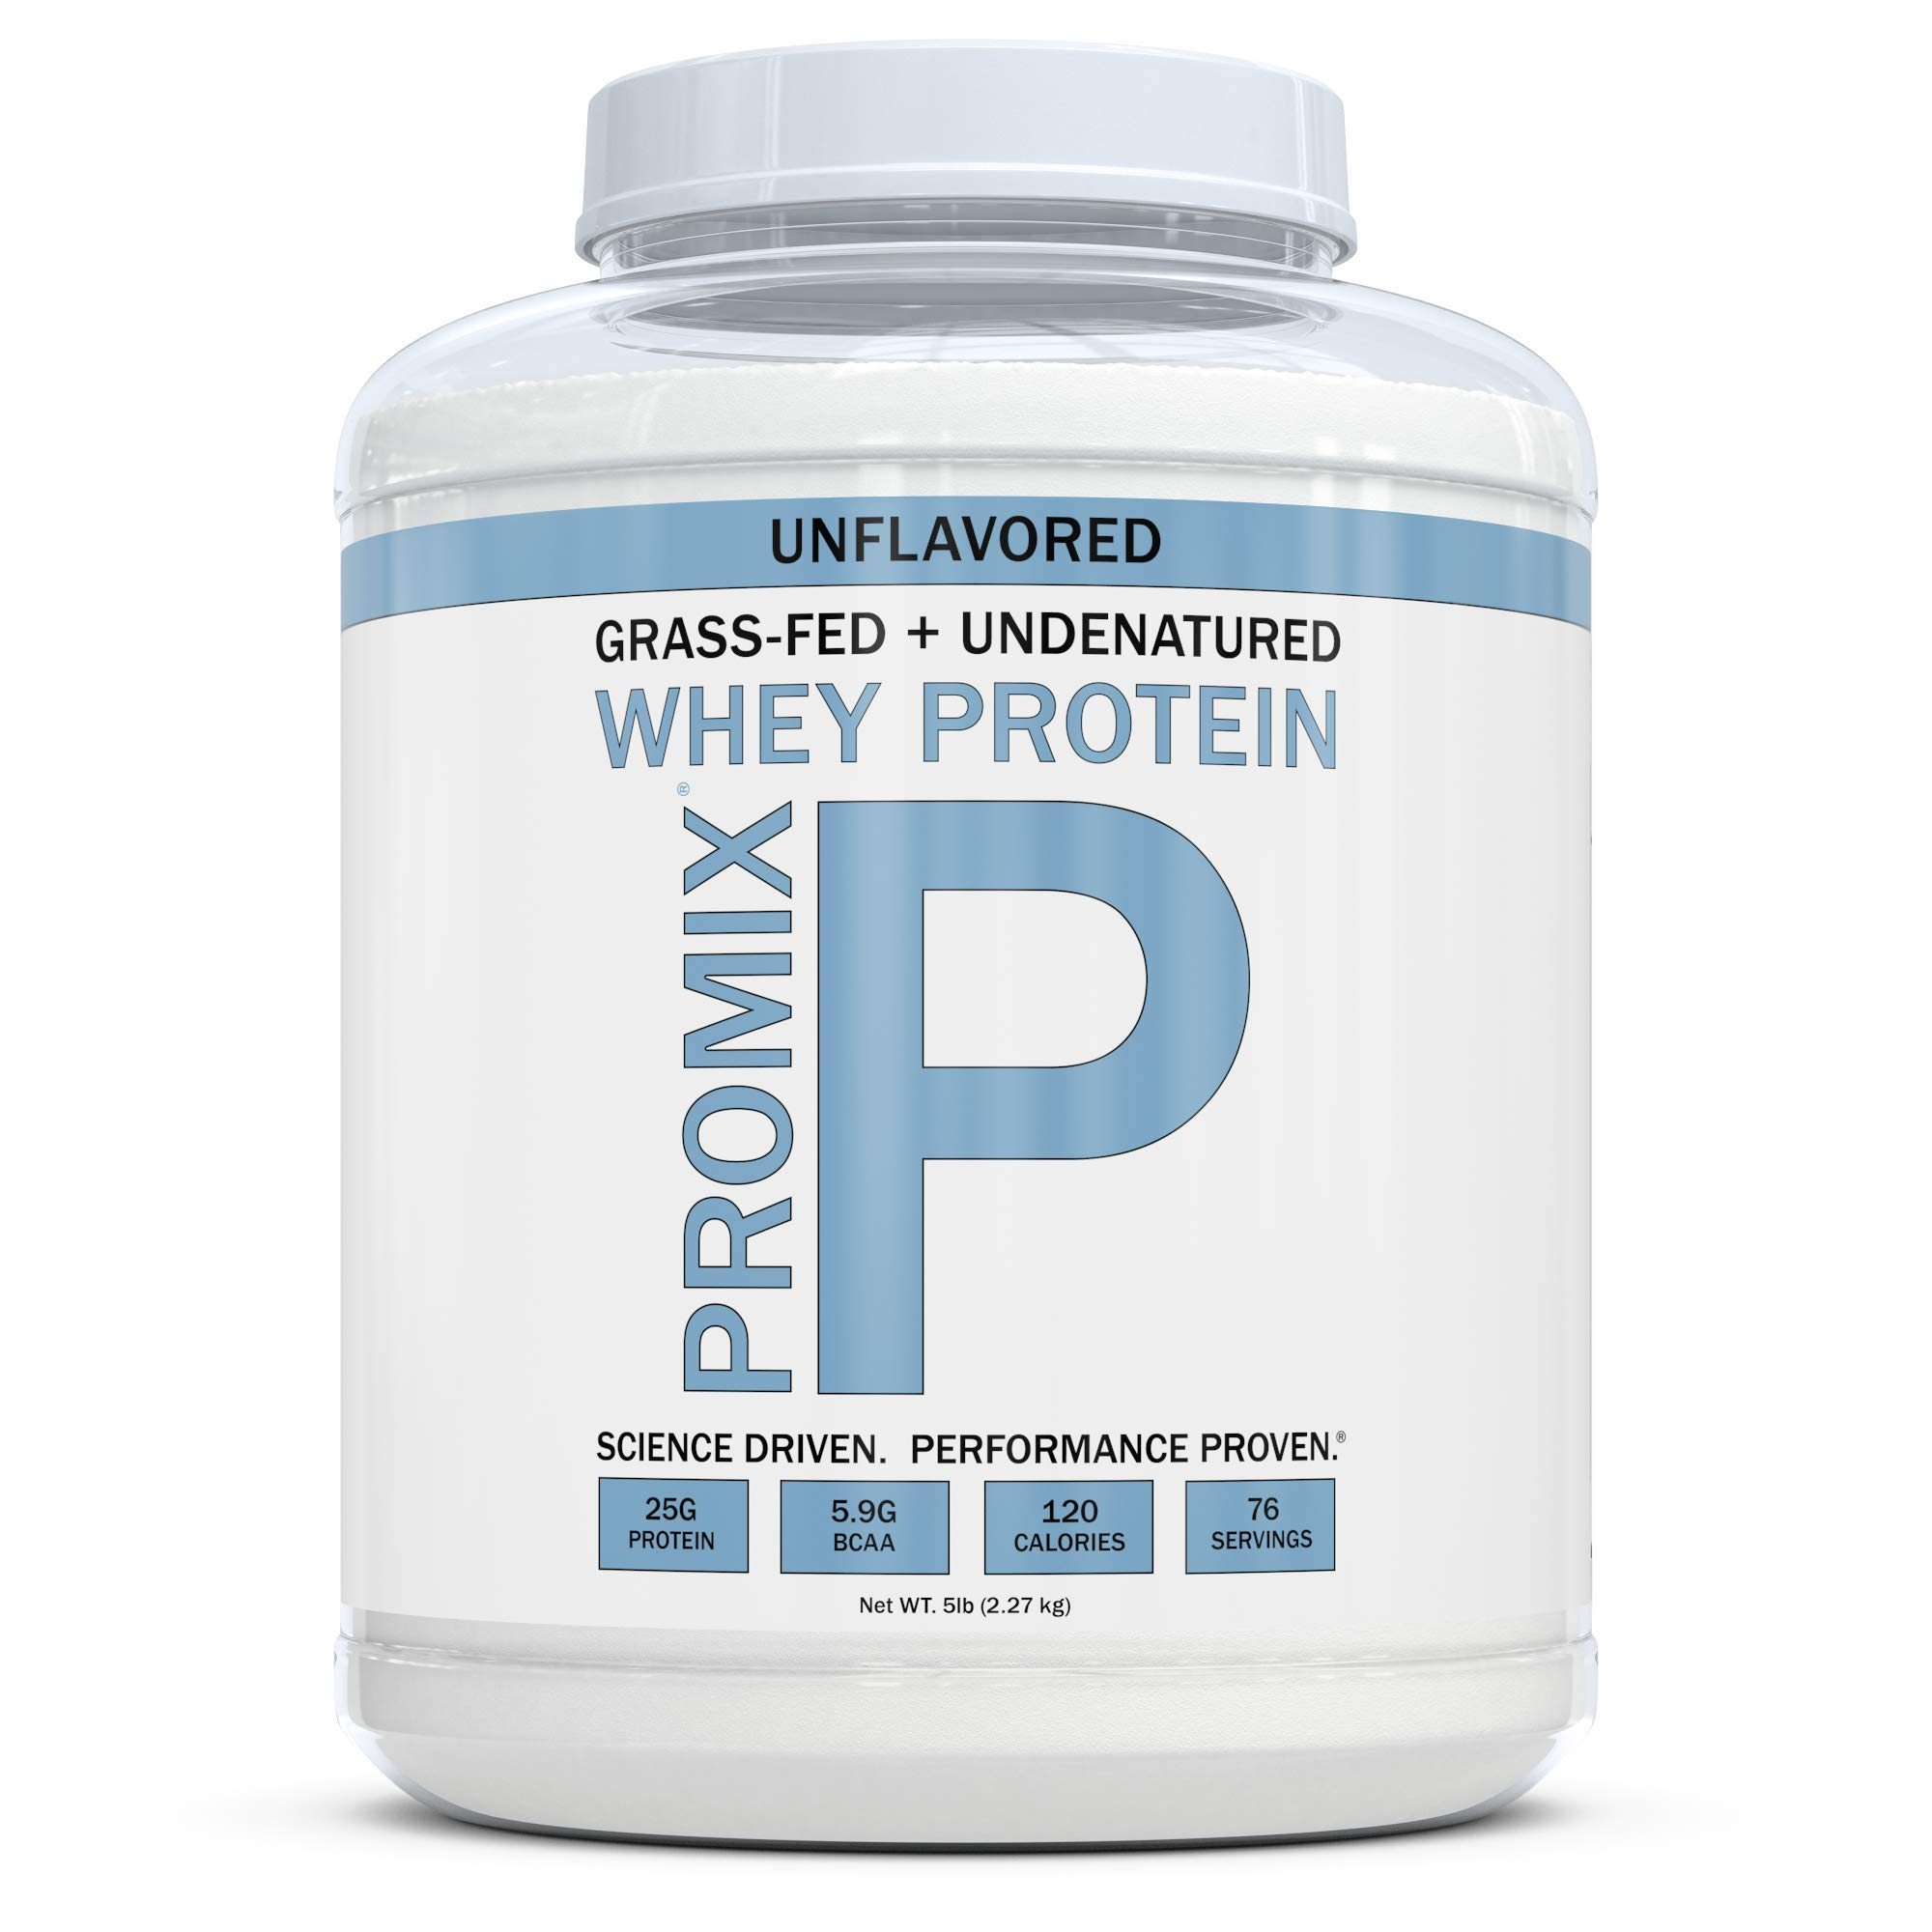 Grass Fed Whey Protein | 5lb | Unflavored Whey from California Cows | 100% Natural Whey | 2 Ingredients w/ No Sweeteners or Added Sugars | Non-GMO + Gluten Free + Preservative Free | Pure Promix_bulk by ProMix Nutrition (Image #1)